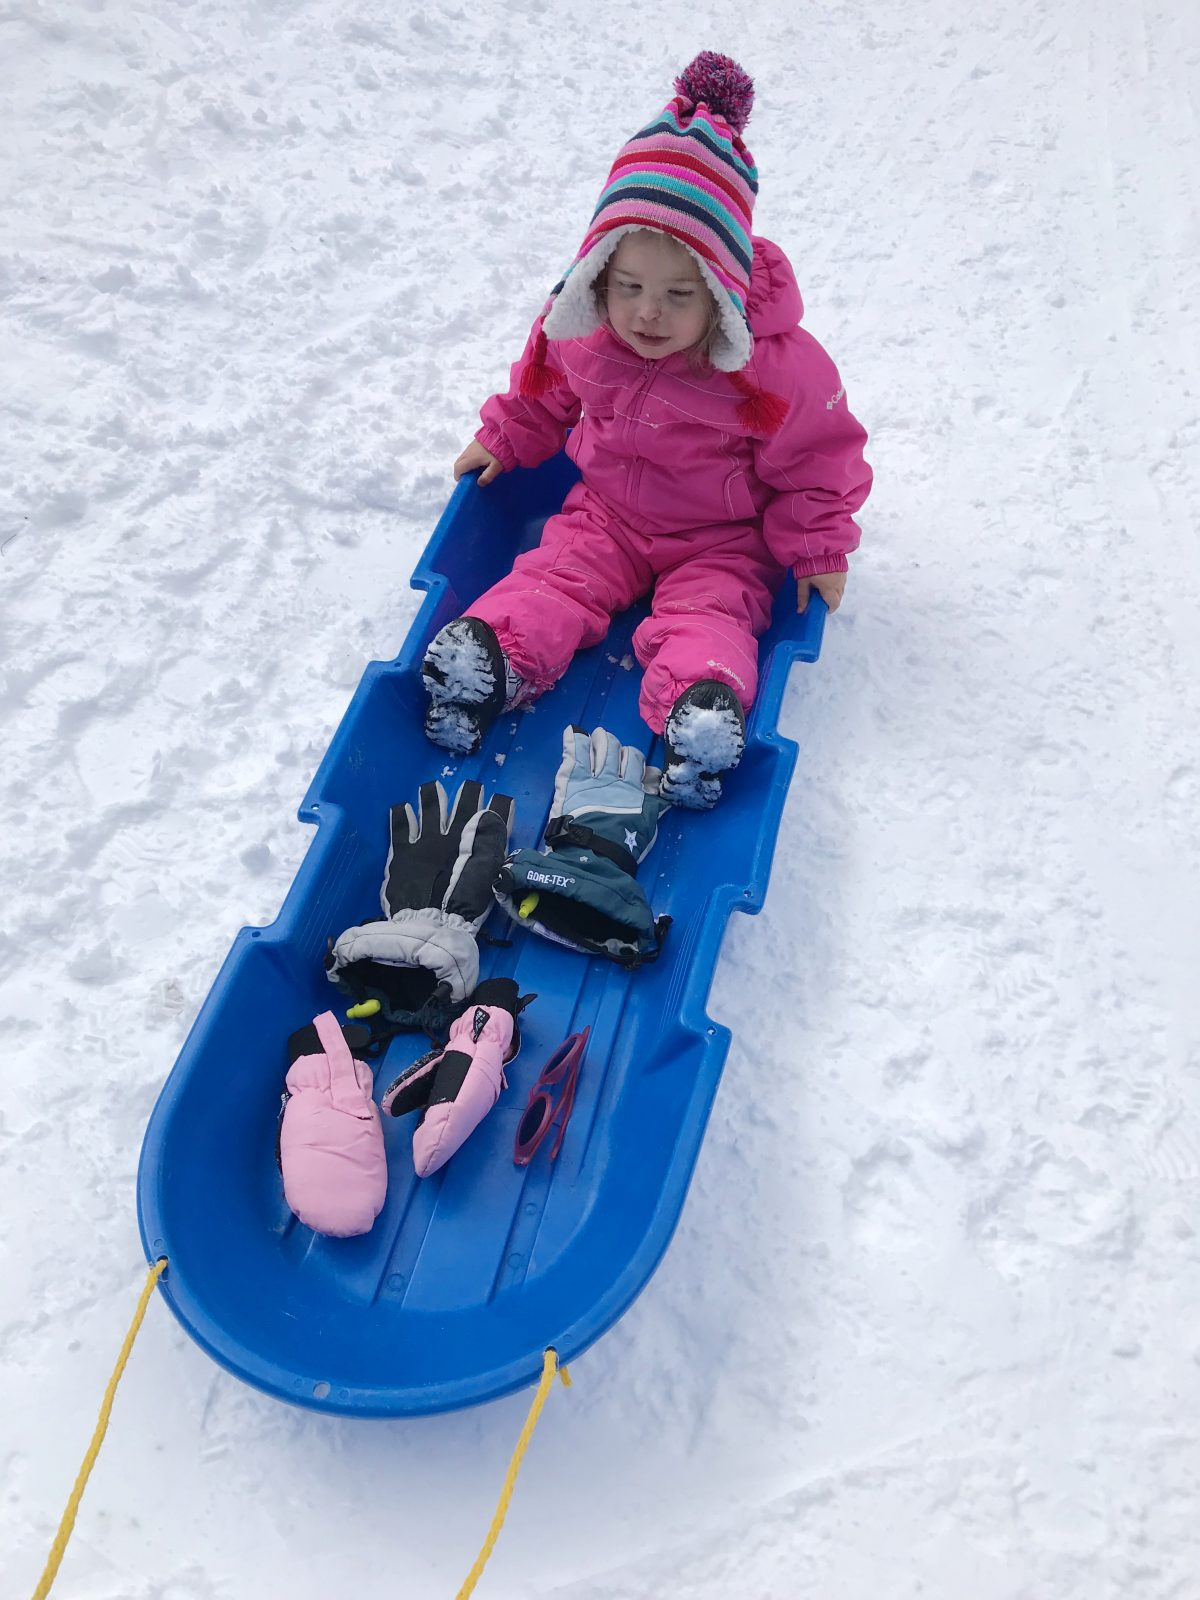 Family ski trip with toddler - sledding